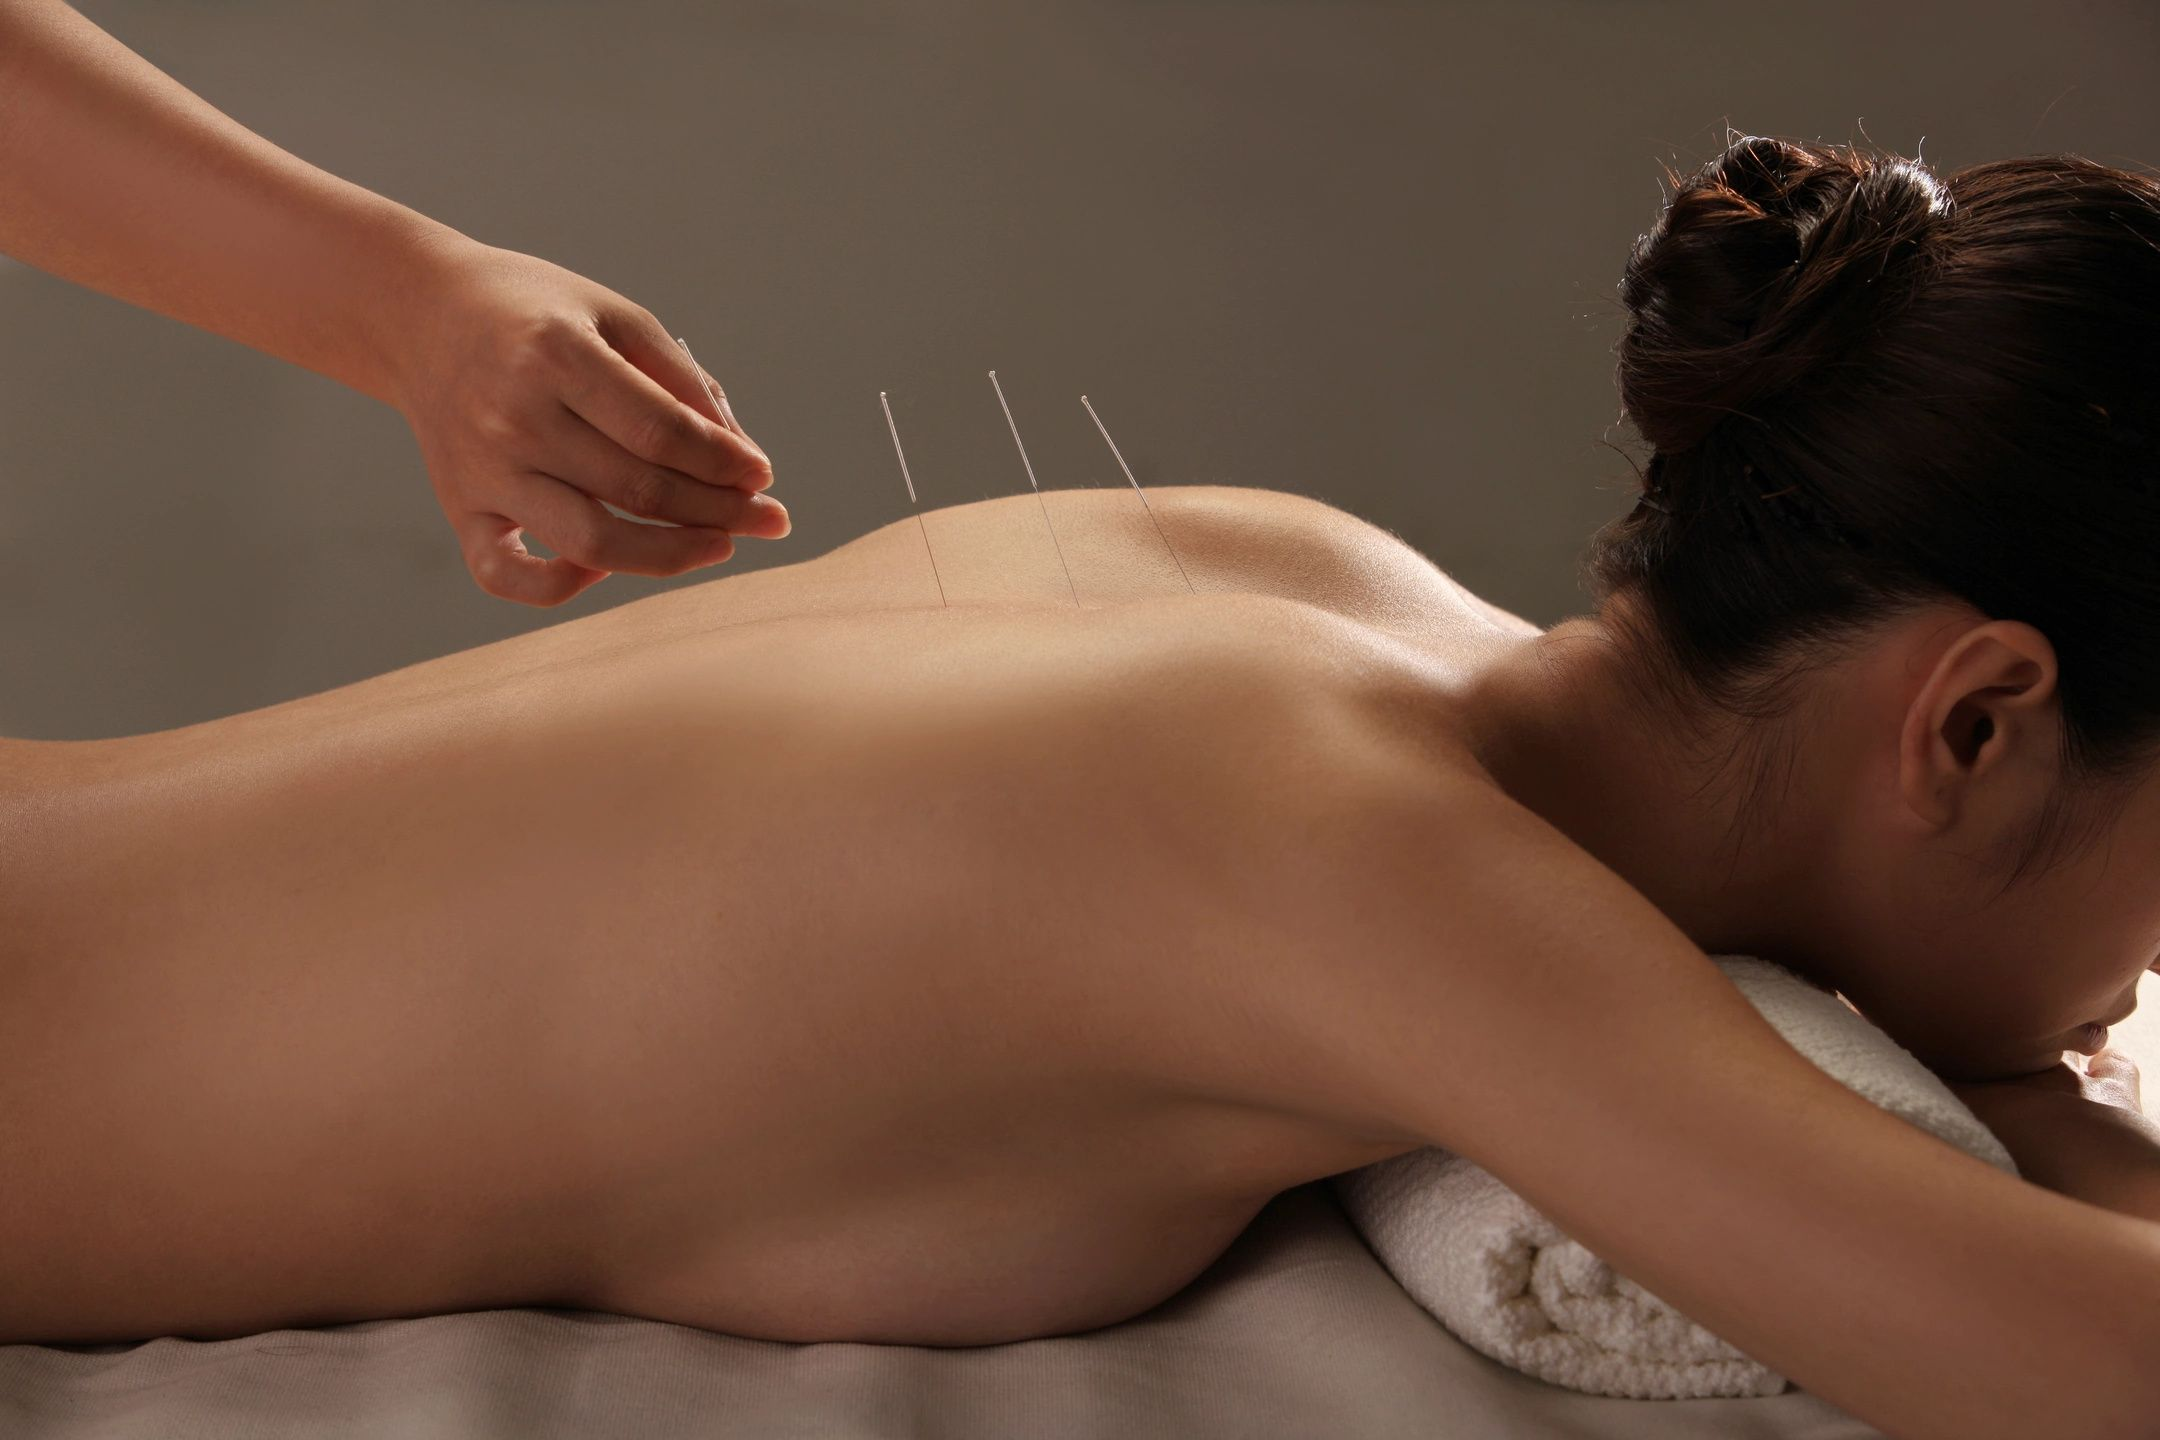 <h2>Acupuncture </h2><div class='slide-content'><p><span class='highlight'>Acupuncture has been around for over 2500 years. It is considered one of the biggest form of Traditional Chinese Medicine and is used widely across the globe.</span></p><p><span class='highlight'>Acupuncture can help with an endless amount of health issues. There are over 1000 Acupuncture points on the body.</span></p></div><a href='https://naturalhealthnovascotia.com/acupuncture/' class='btn' title='Read more'>Read more</a>